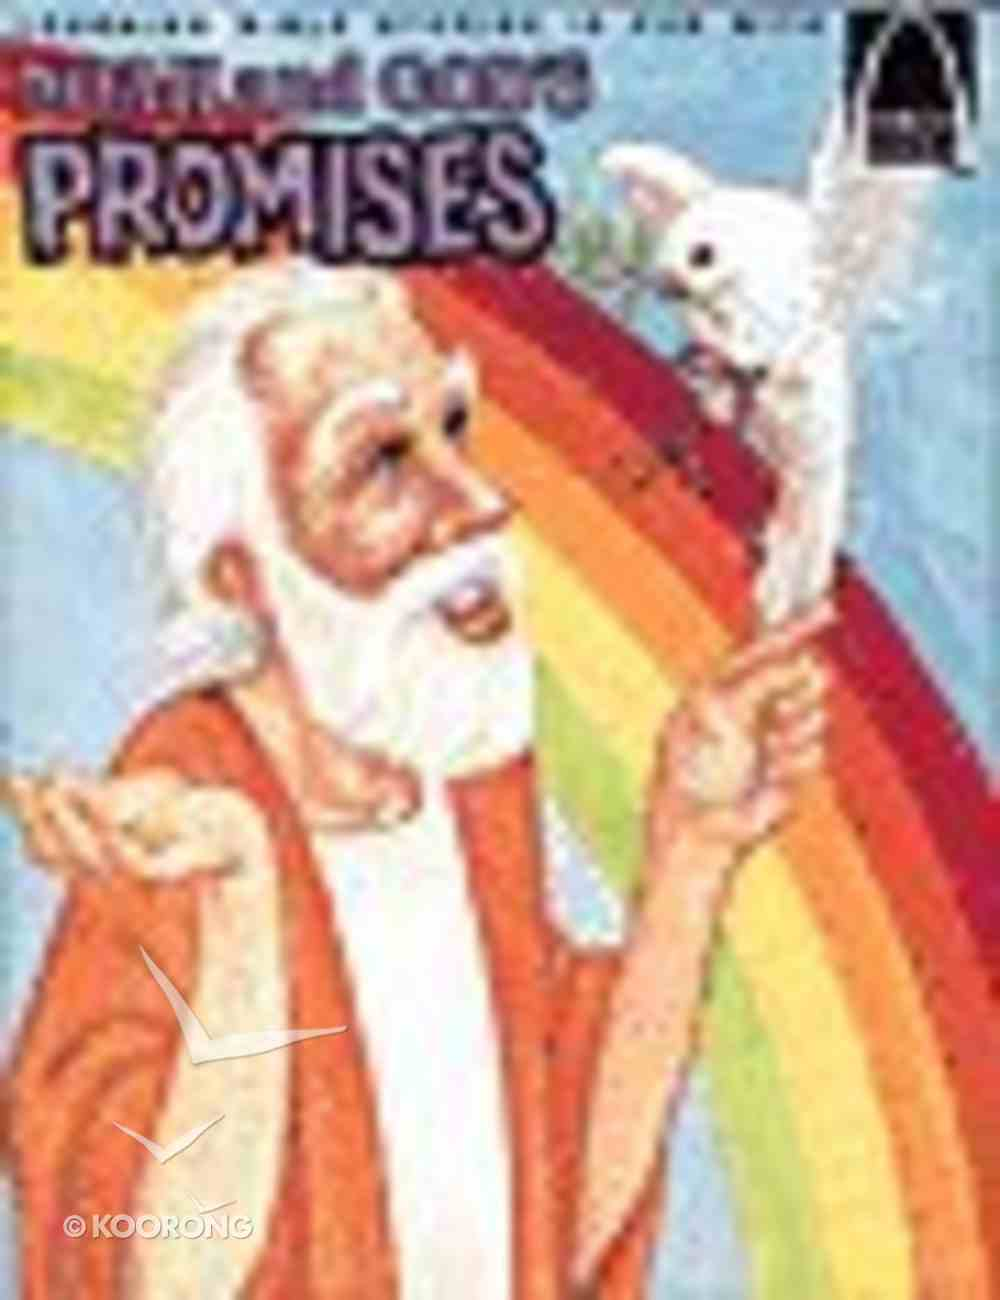 Noah and God's Promises (Arch Books Series) Paperback